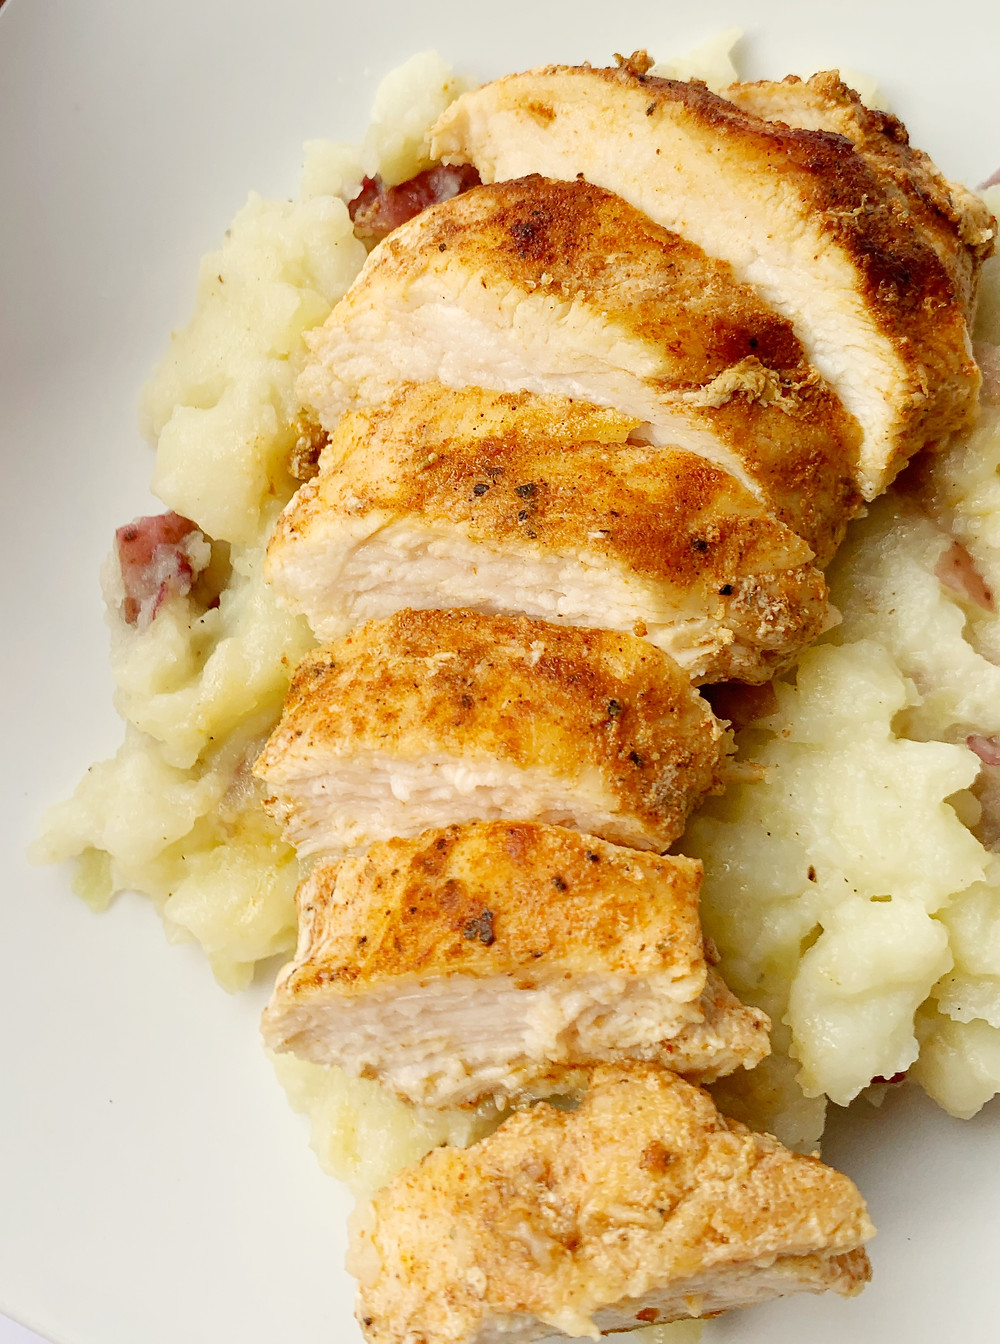 closeup shot of sliced juicy jerk chicken breasts over a mound ofgarlic mashed red potatoes